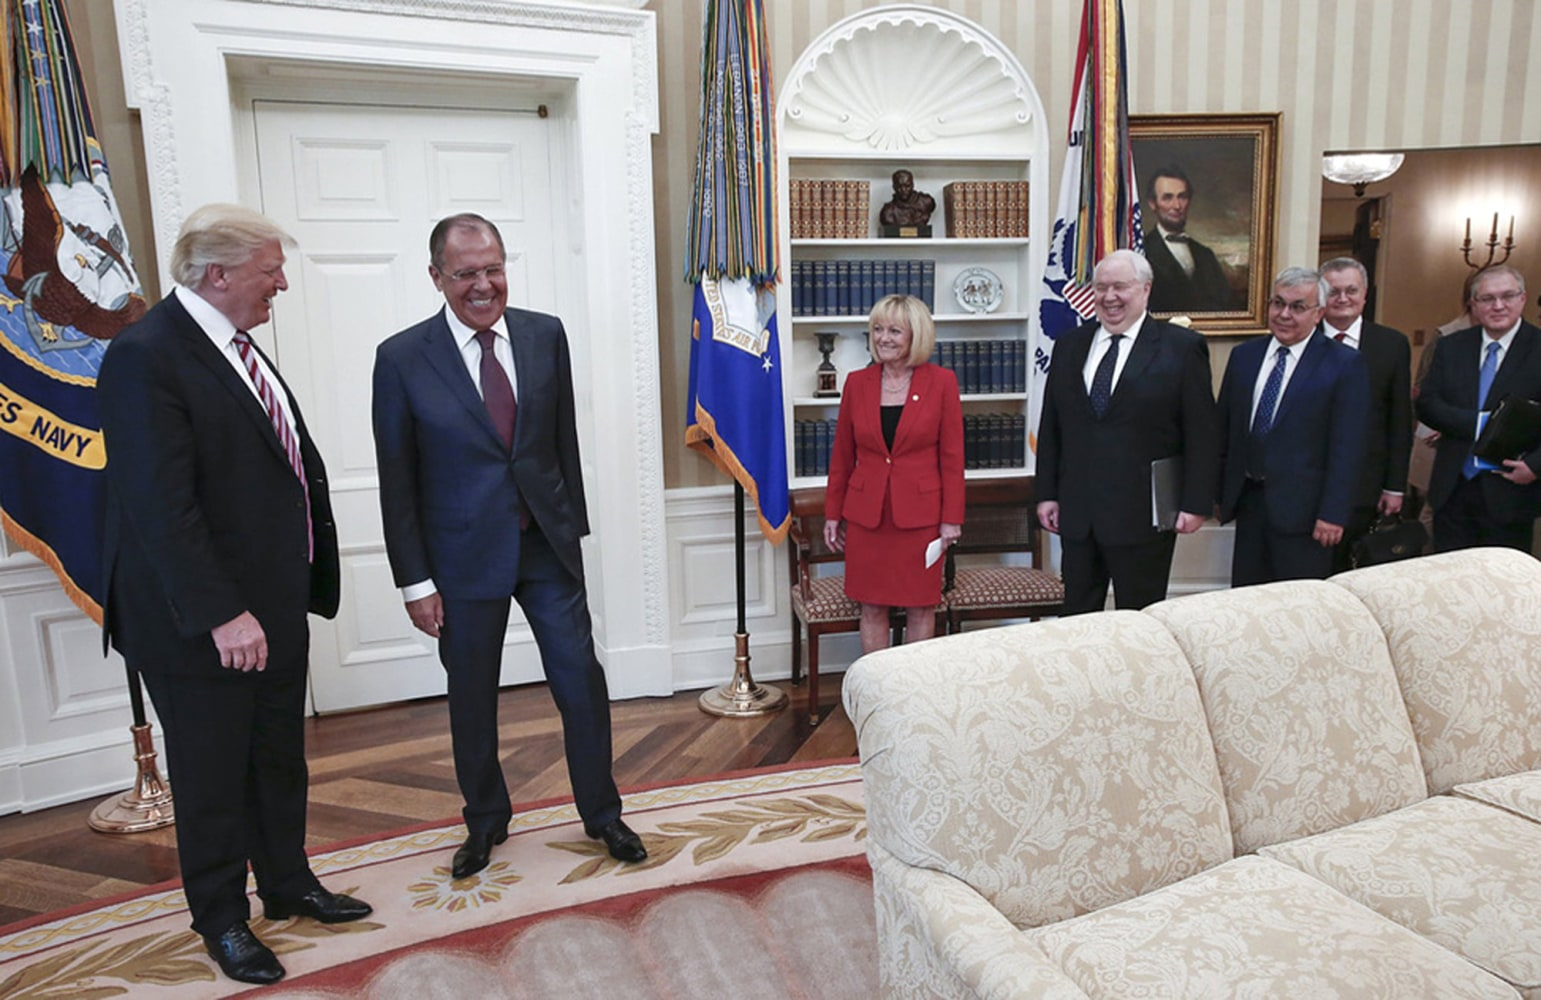 Image result for photos of russians recent visit to the white house